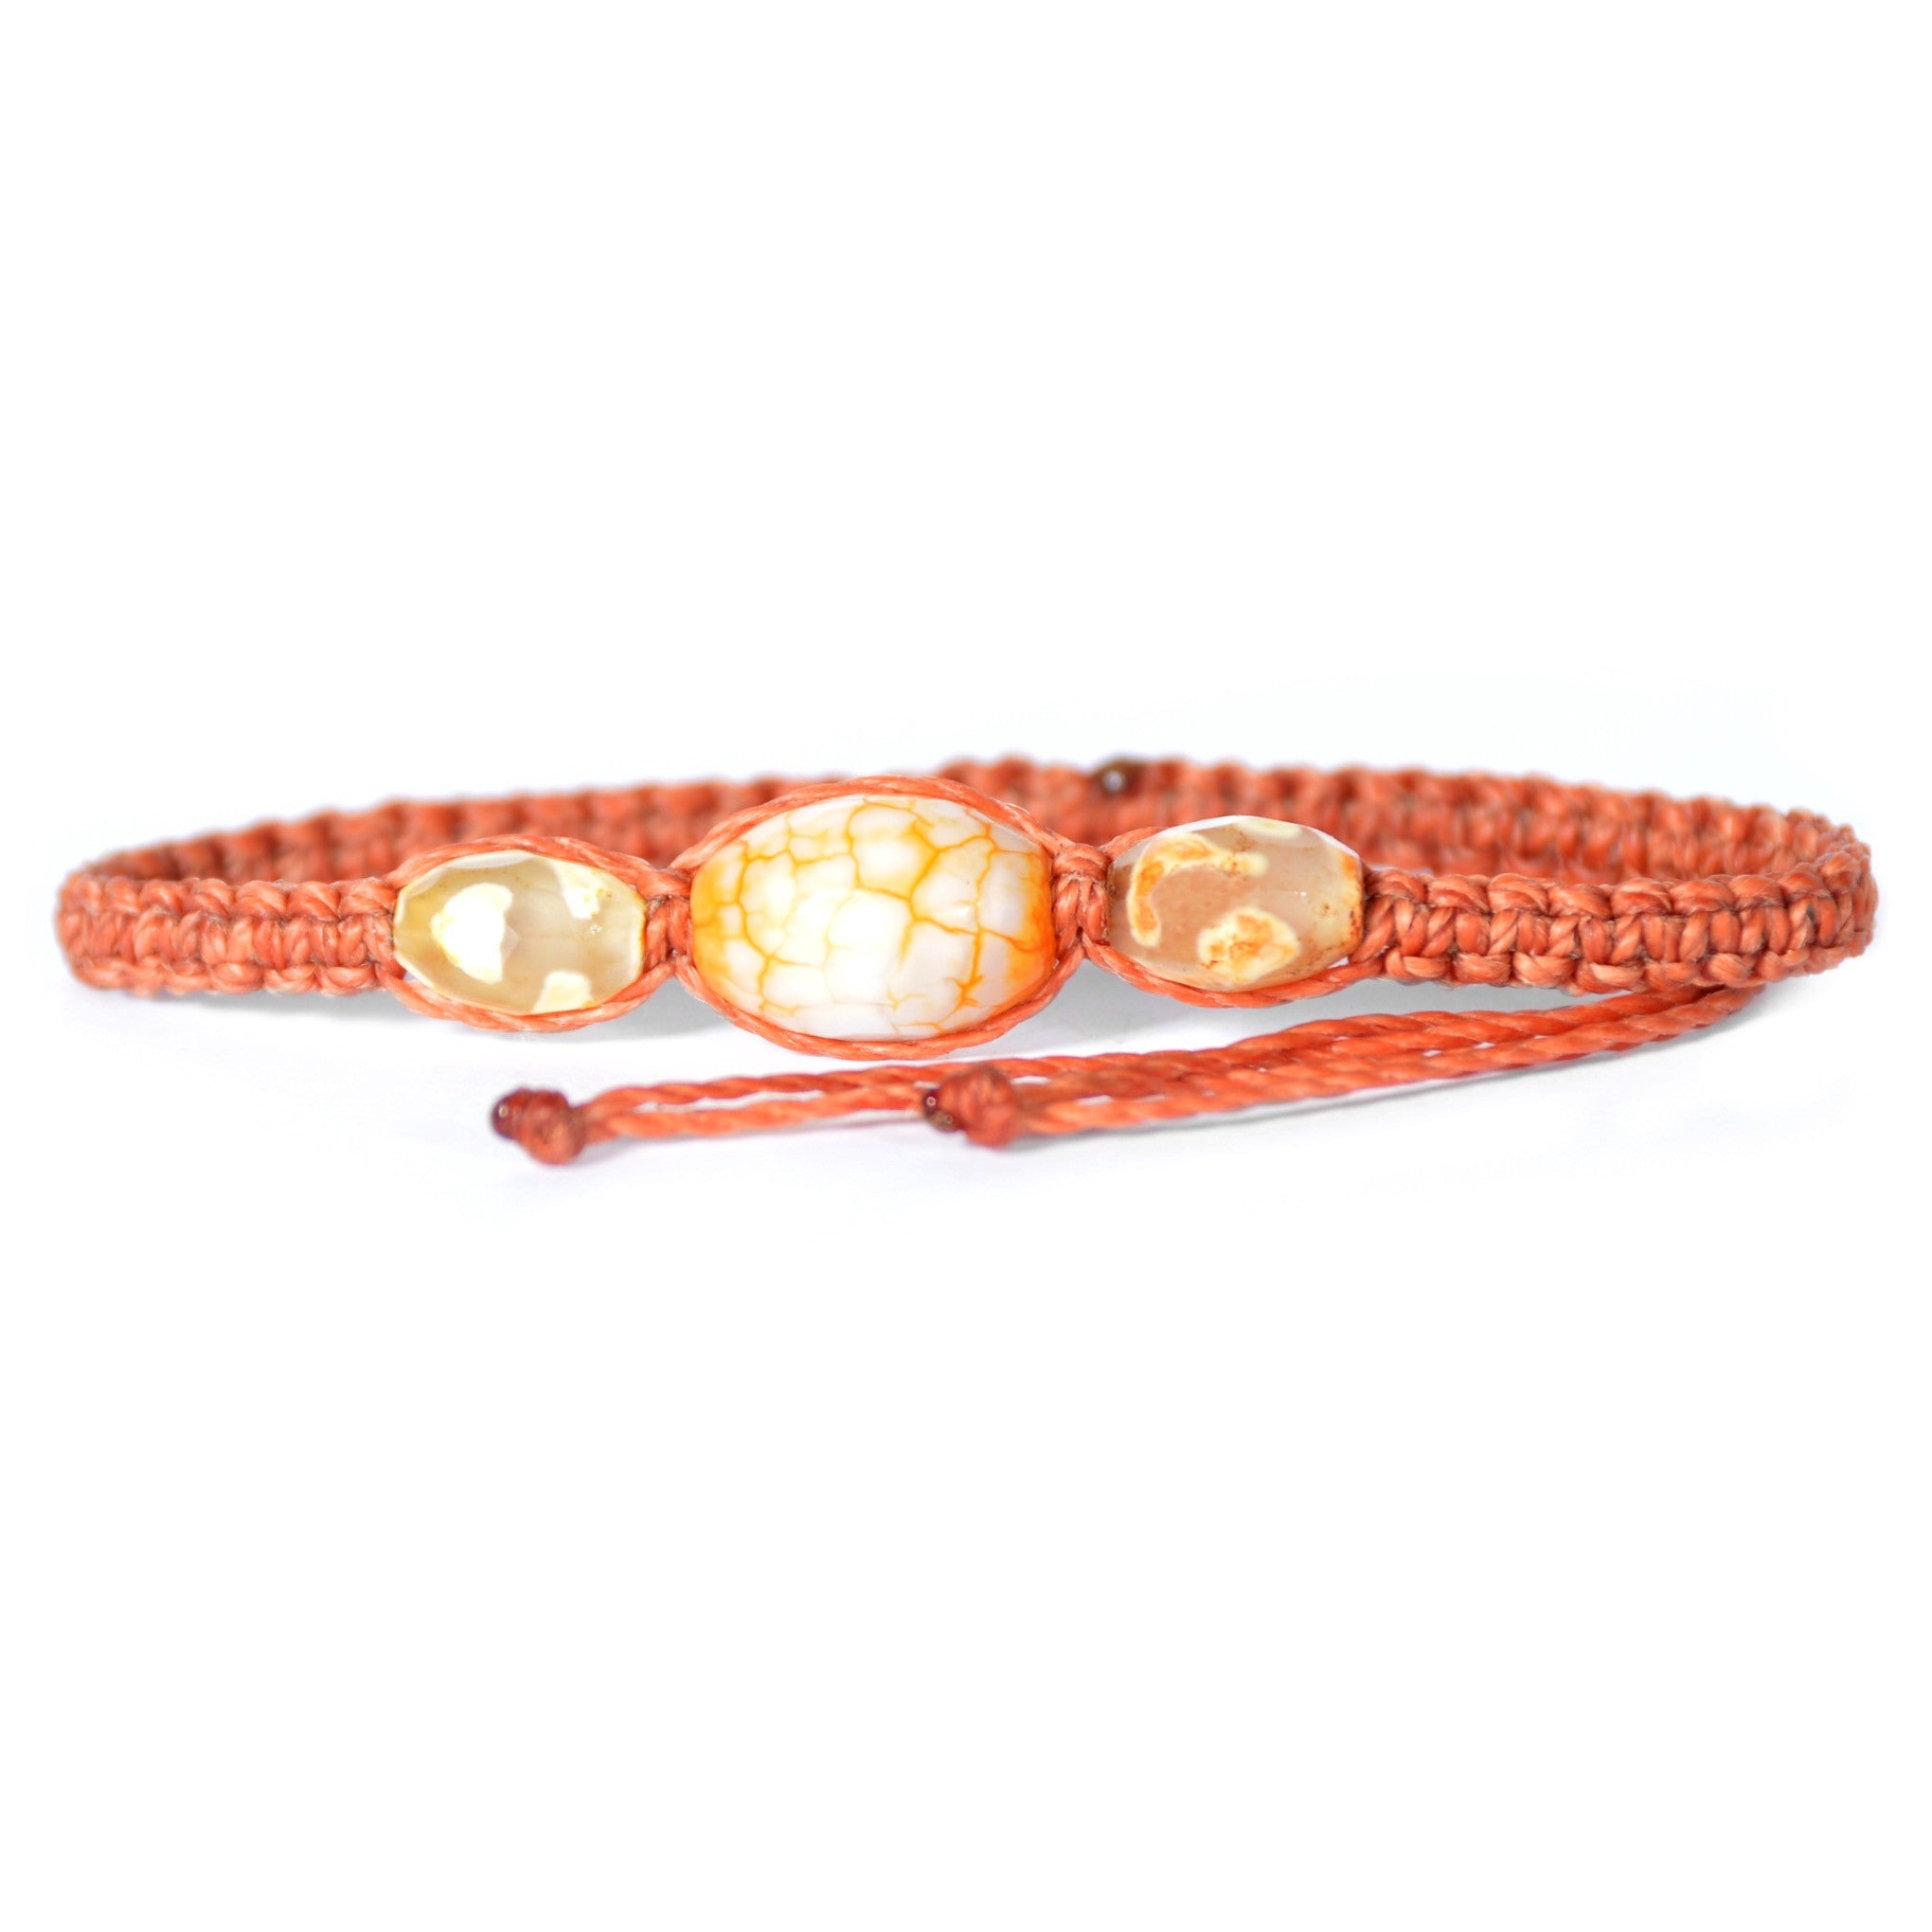 Beaded Artisan Glass Bracelet Burnt Orange